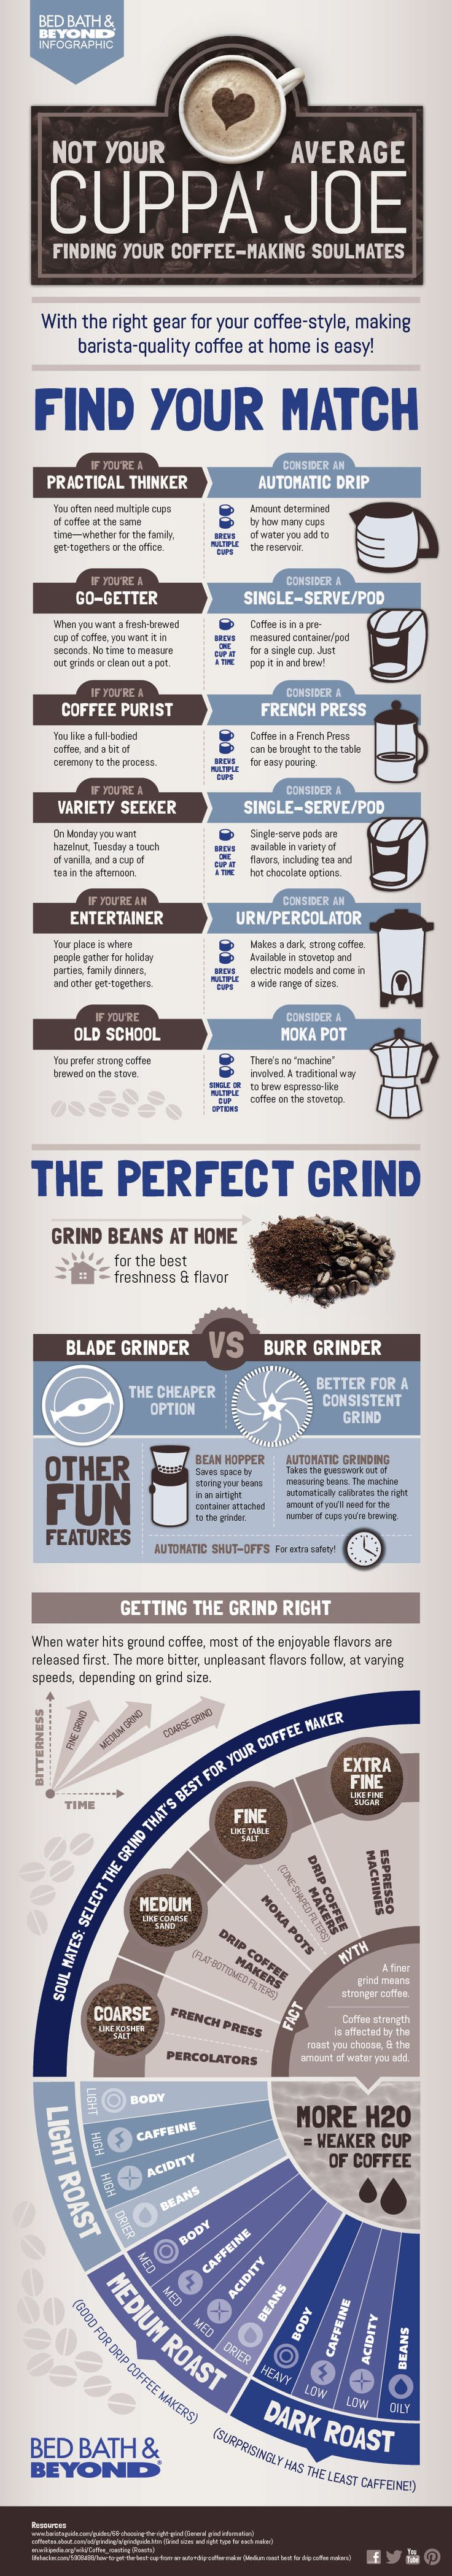 What Kind of #Coffee Person are You? Find out more with this #infographic - http://www.finedininglovers.com/blog/food-drinks/coffee-infographic/: What Kind of #Coffee Person are You? Find out more with this #infographic - http://www.finedininglovers.com/blog/food-drinks/coffee-infographic/